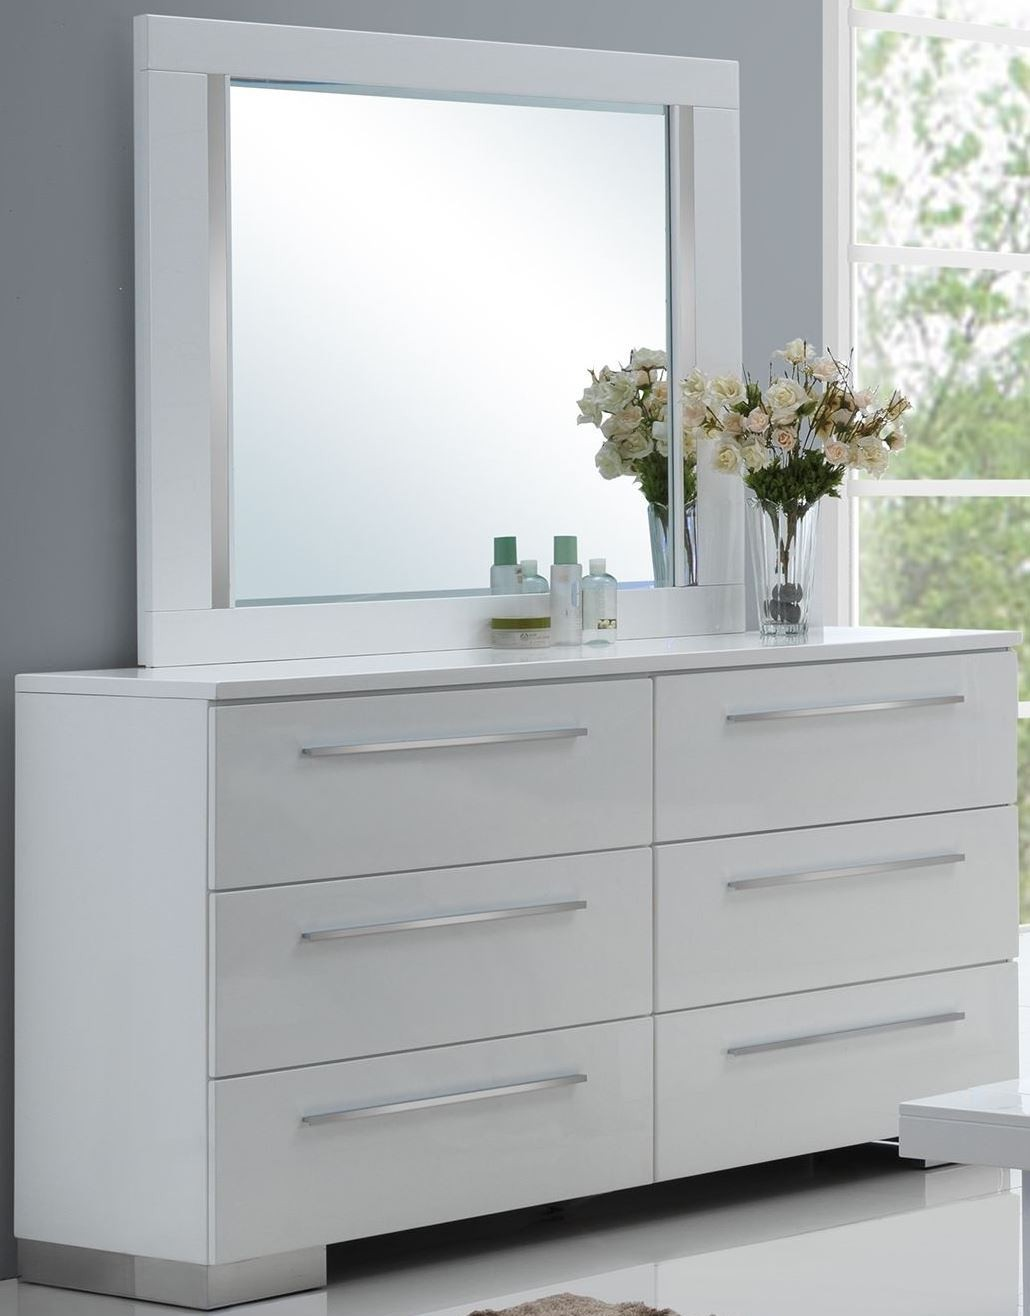 Sapphire high gloss white laminate platform bedroom set b2643 310 320 330 new classics for White laminate bedroom furniture